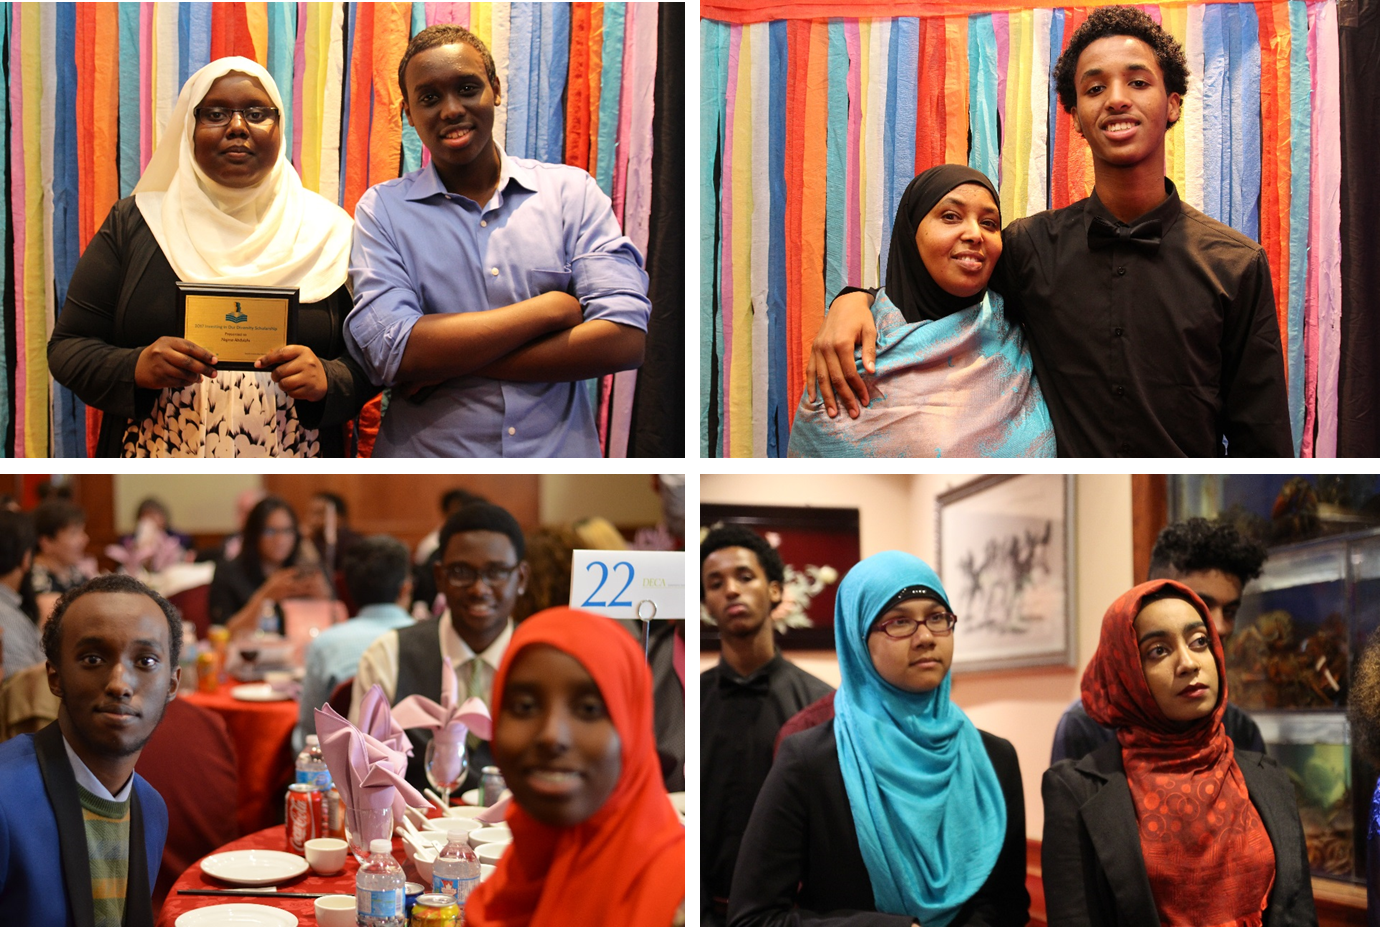 Students from across Toronto were recognized for the outstanding academic achievements and community service.